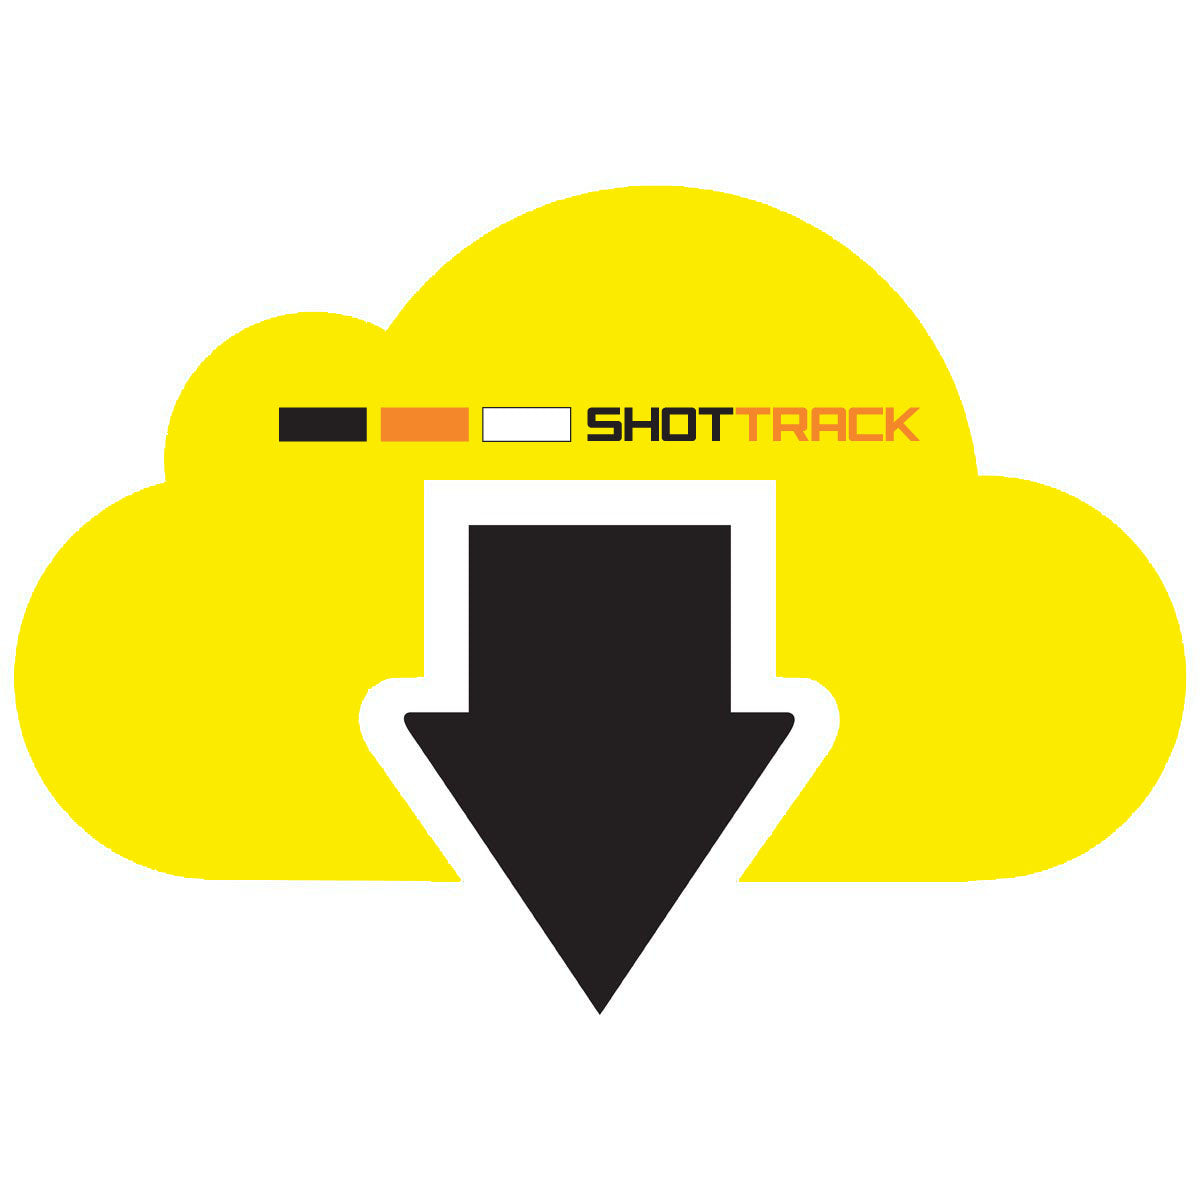 ShotTrack VoD 305 – Firmware Update Guide - Feb 2020